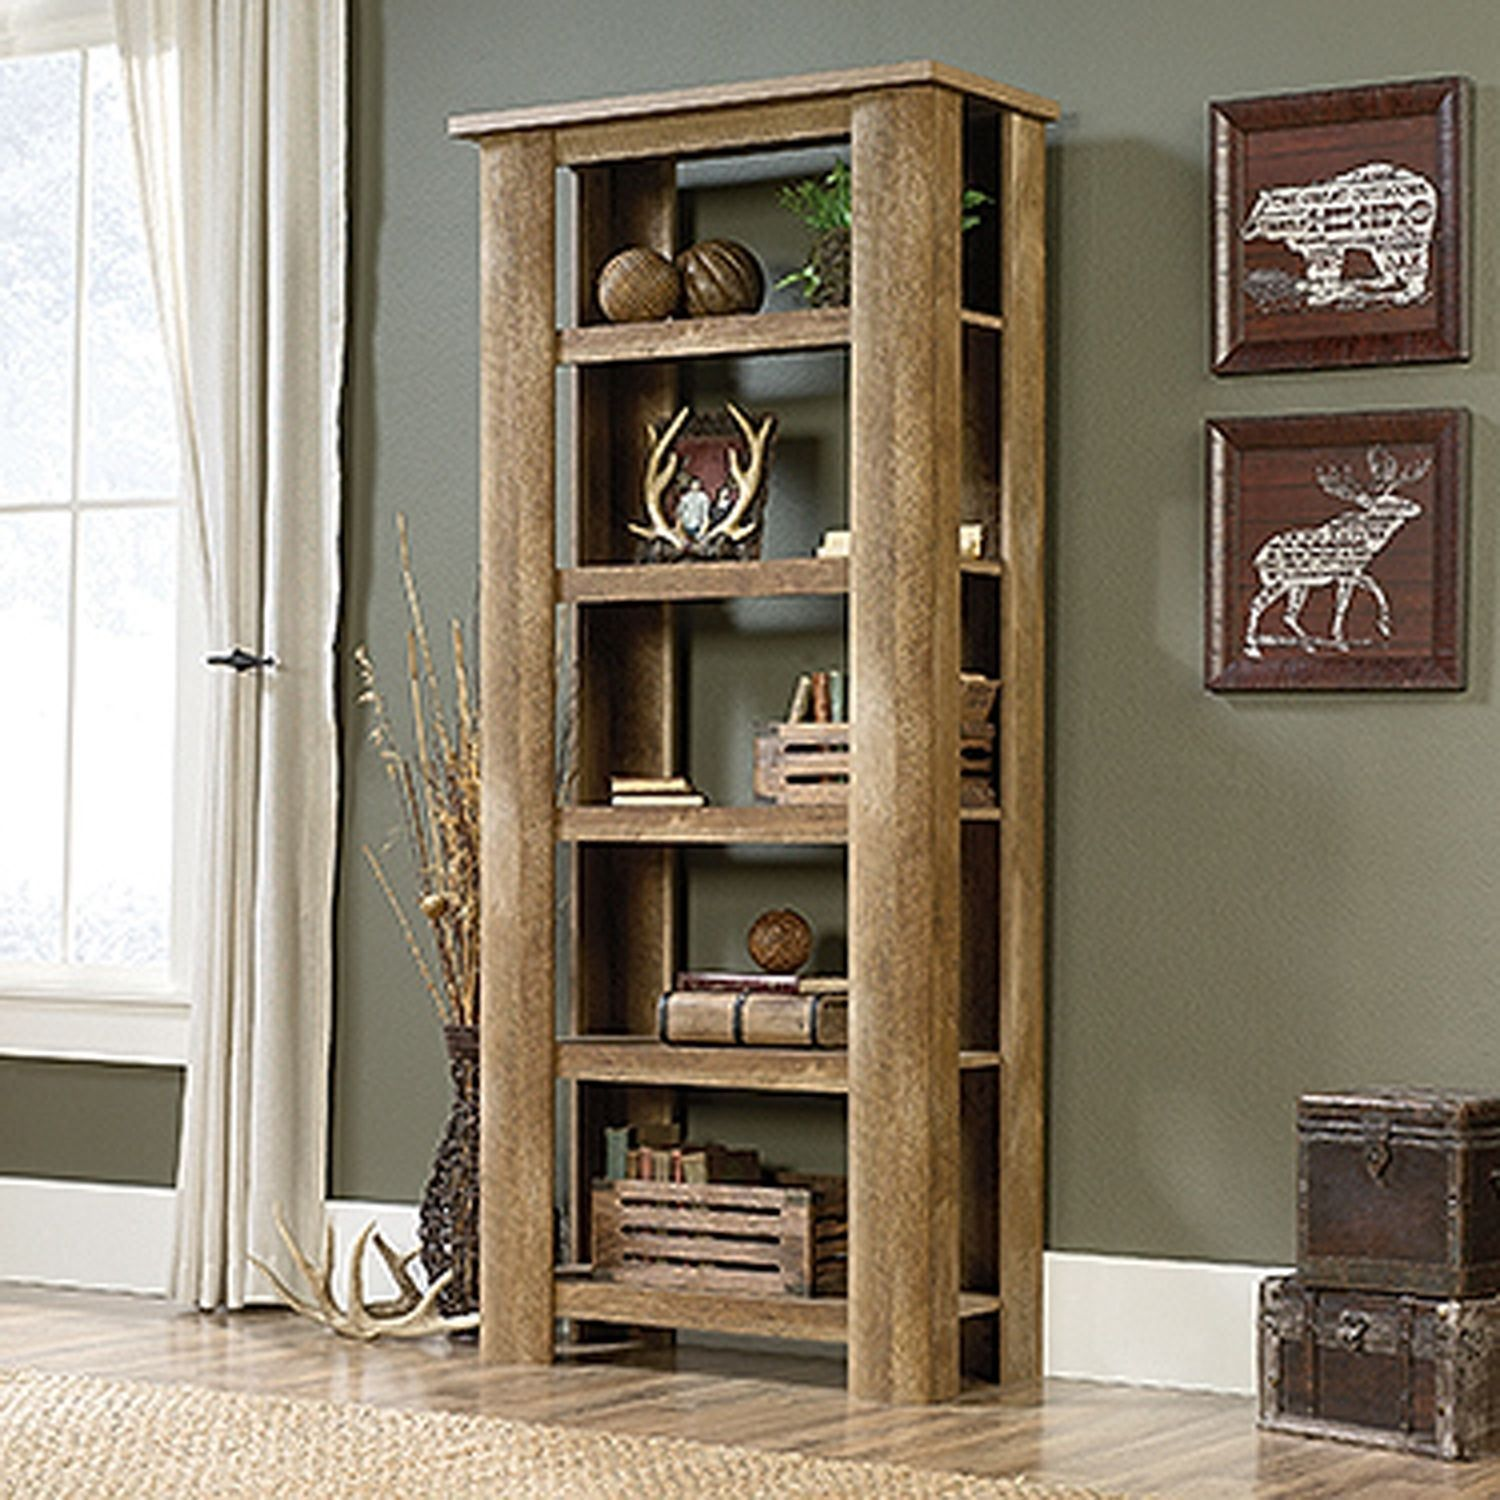 American Furniture Warehouse Bookcases: Boone Mountain Bookcase Craftsman Oak * D In 2020